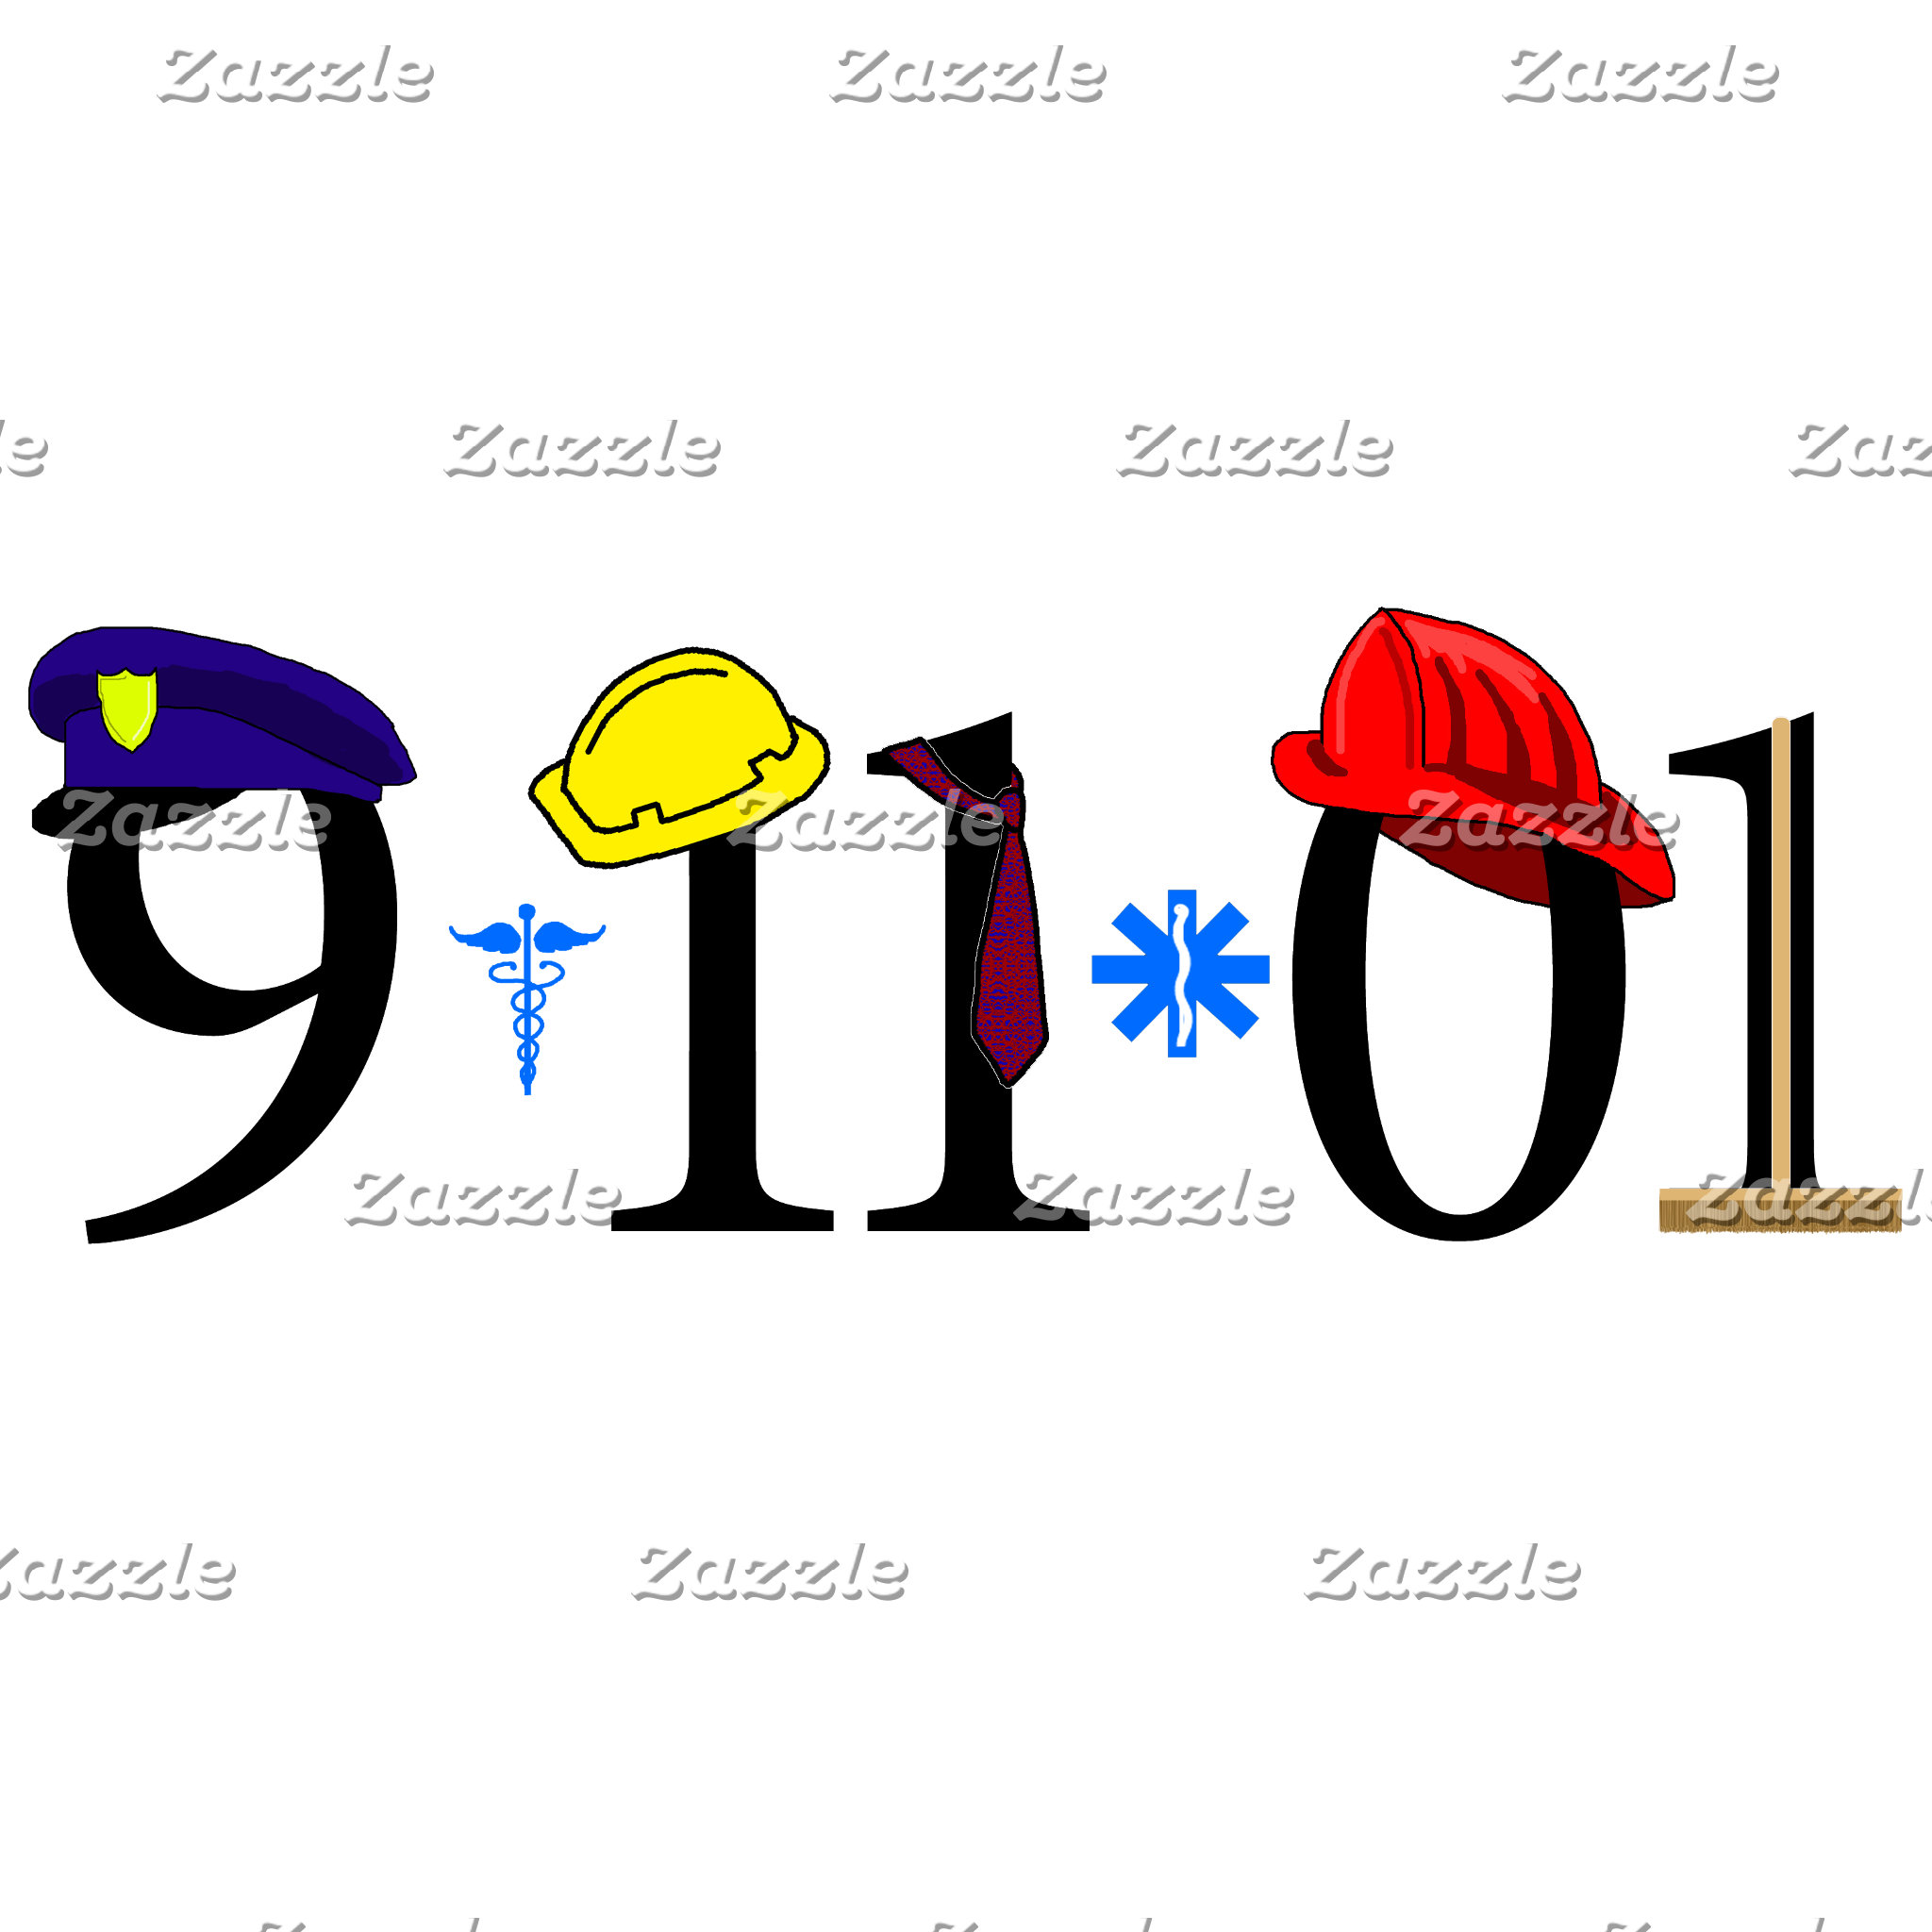 All who were lost 9-11-01